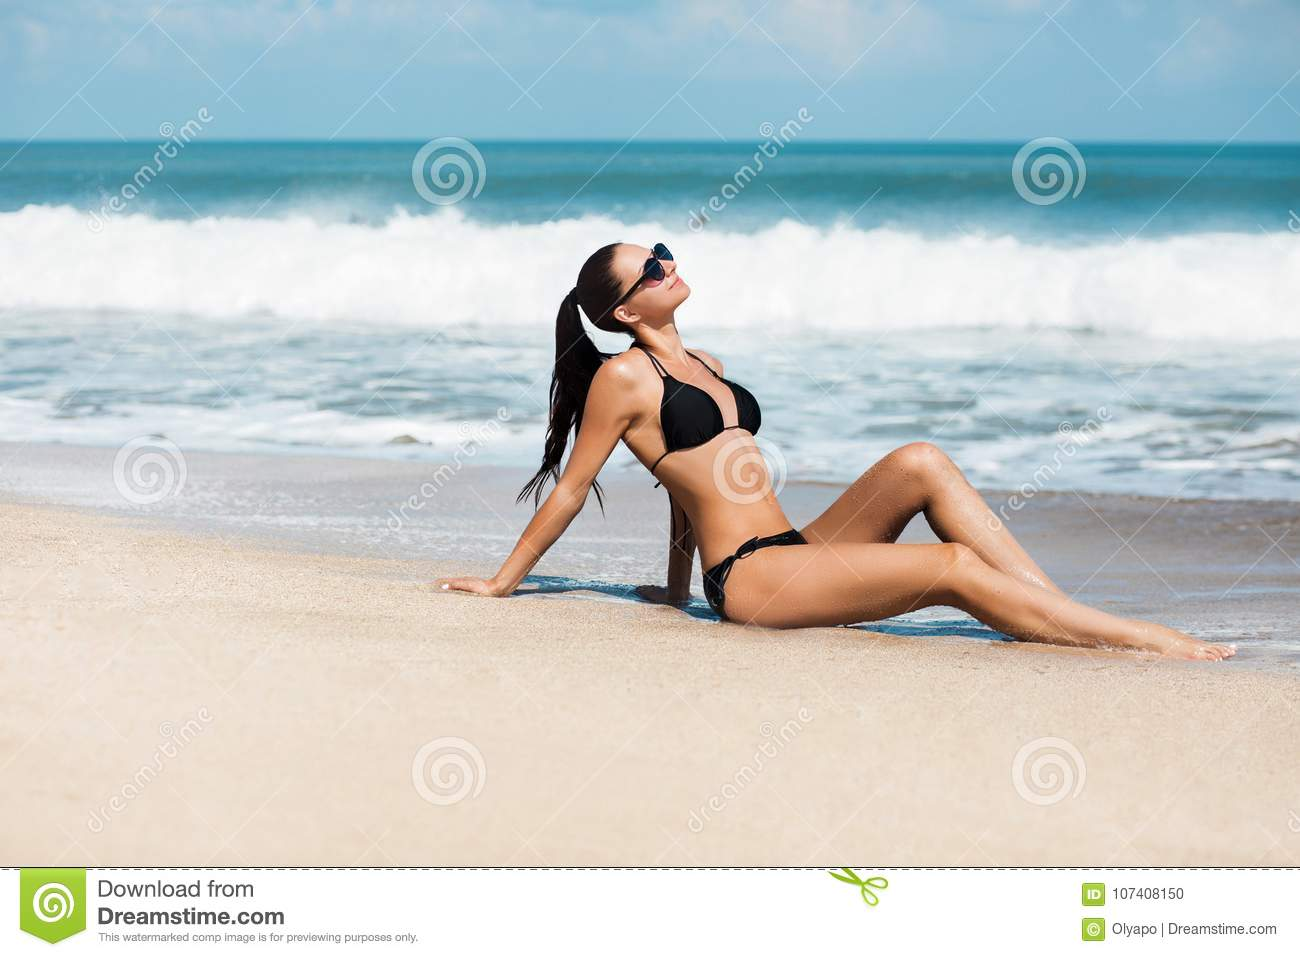 09c24c0f06 Close-up beautiful luxury slim girl in a black bikini on the beach the  ocean. Outdoor summer lifestyle image of young pretty woman outfit and  sunglasses, ...